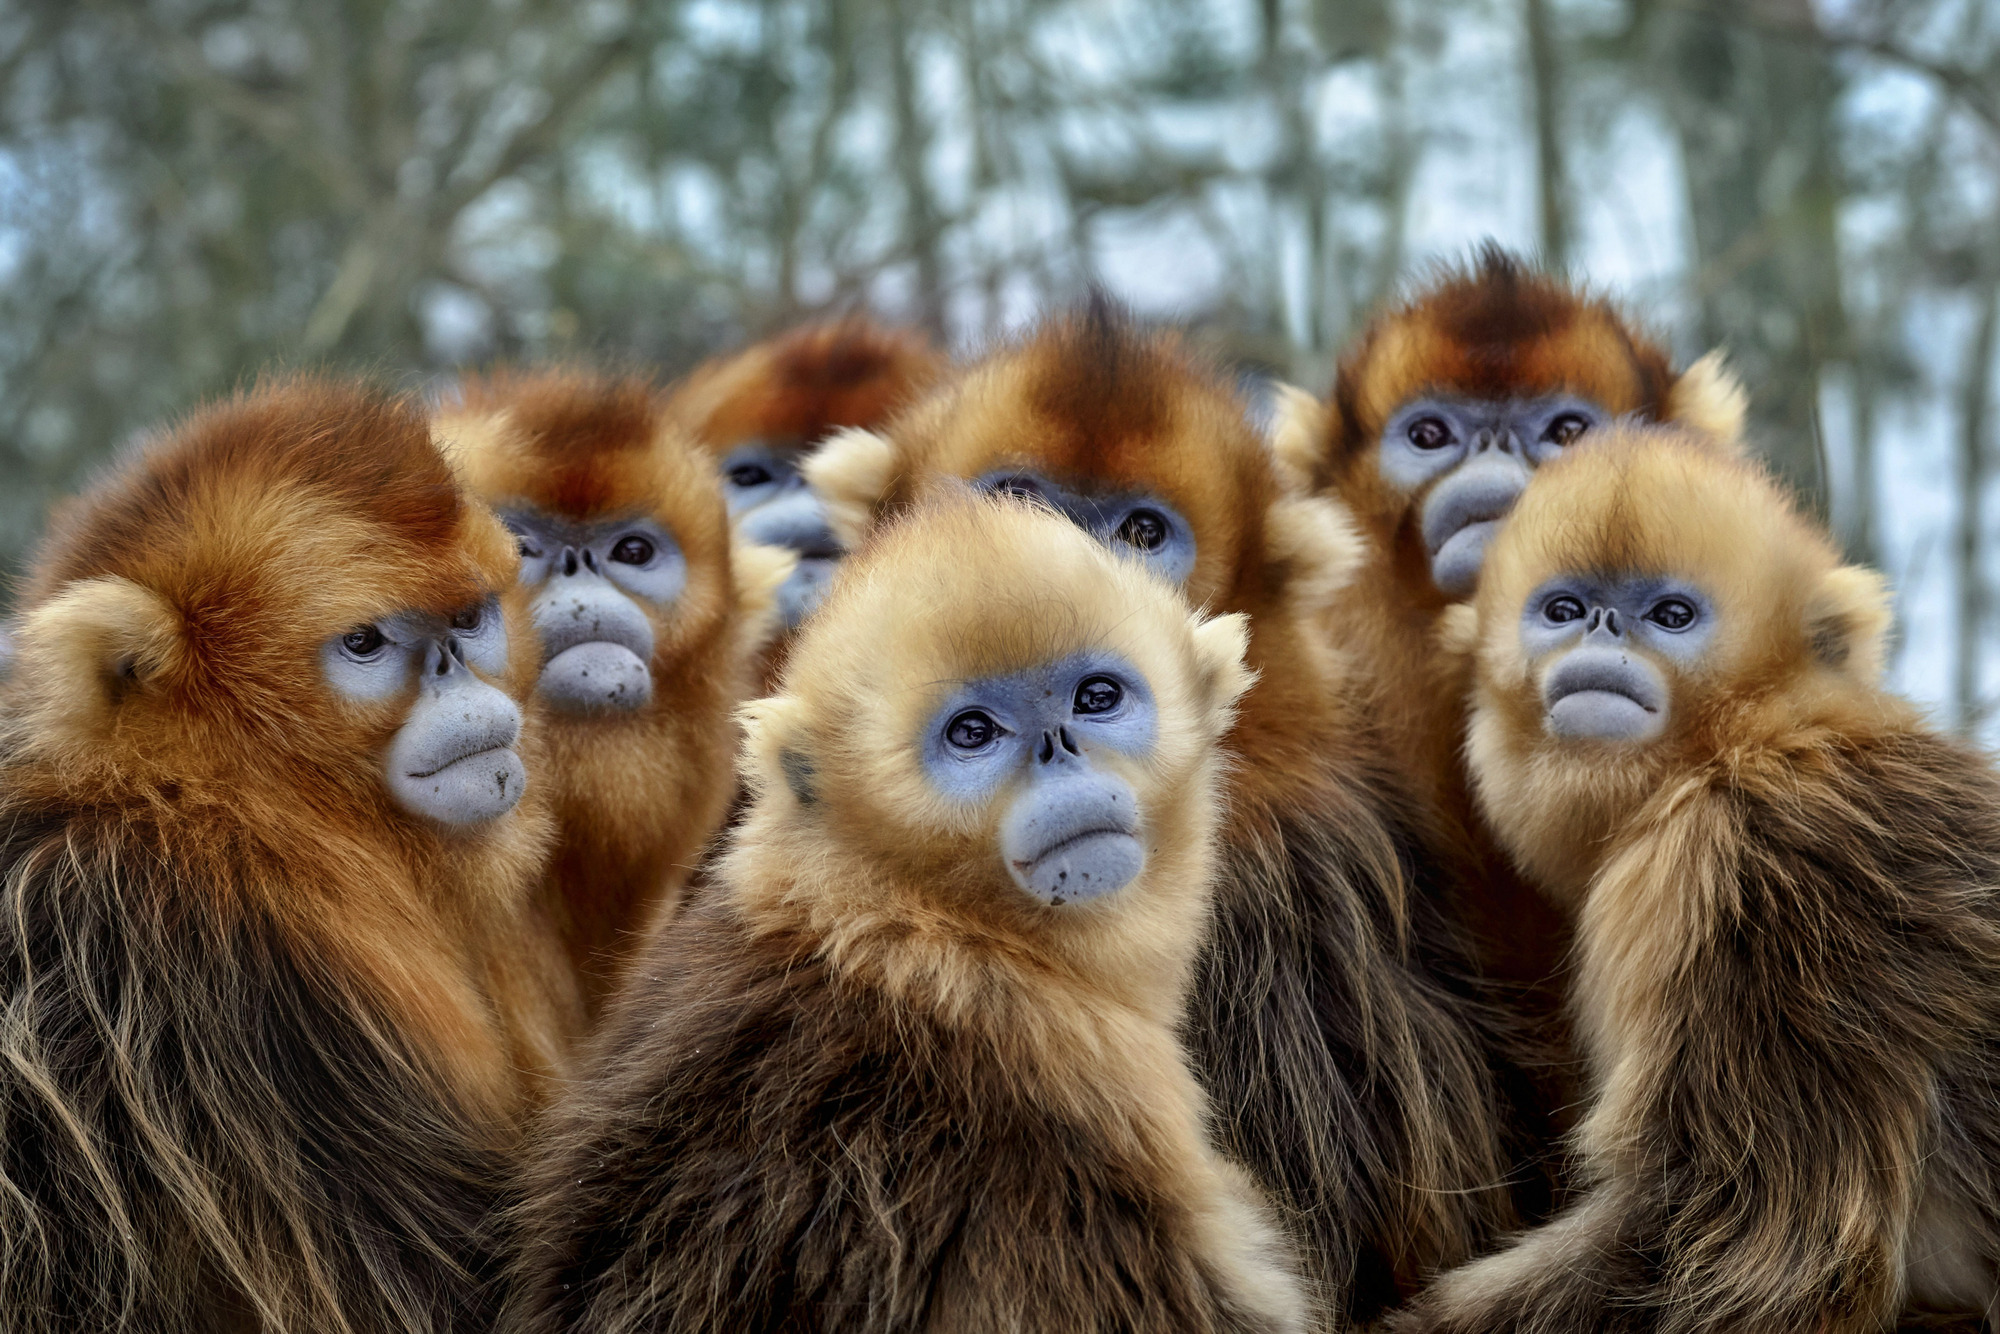 Snub nosed Monkeys in BBCs Seven Worlds, One Planet